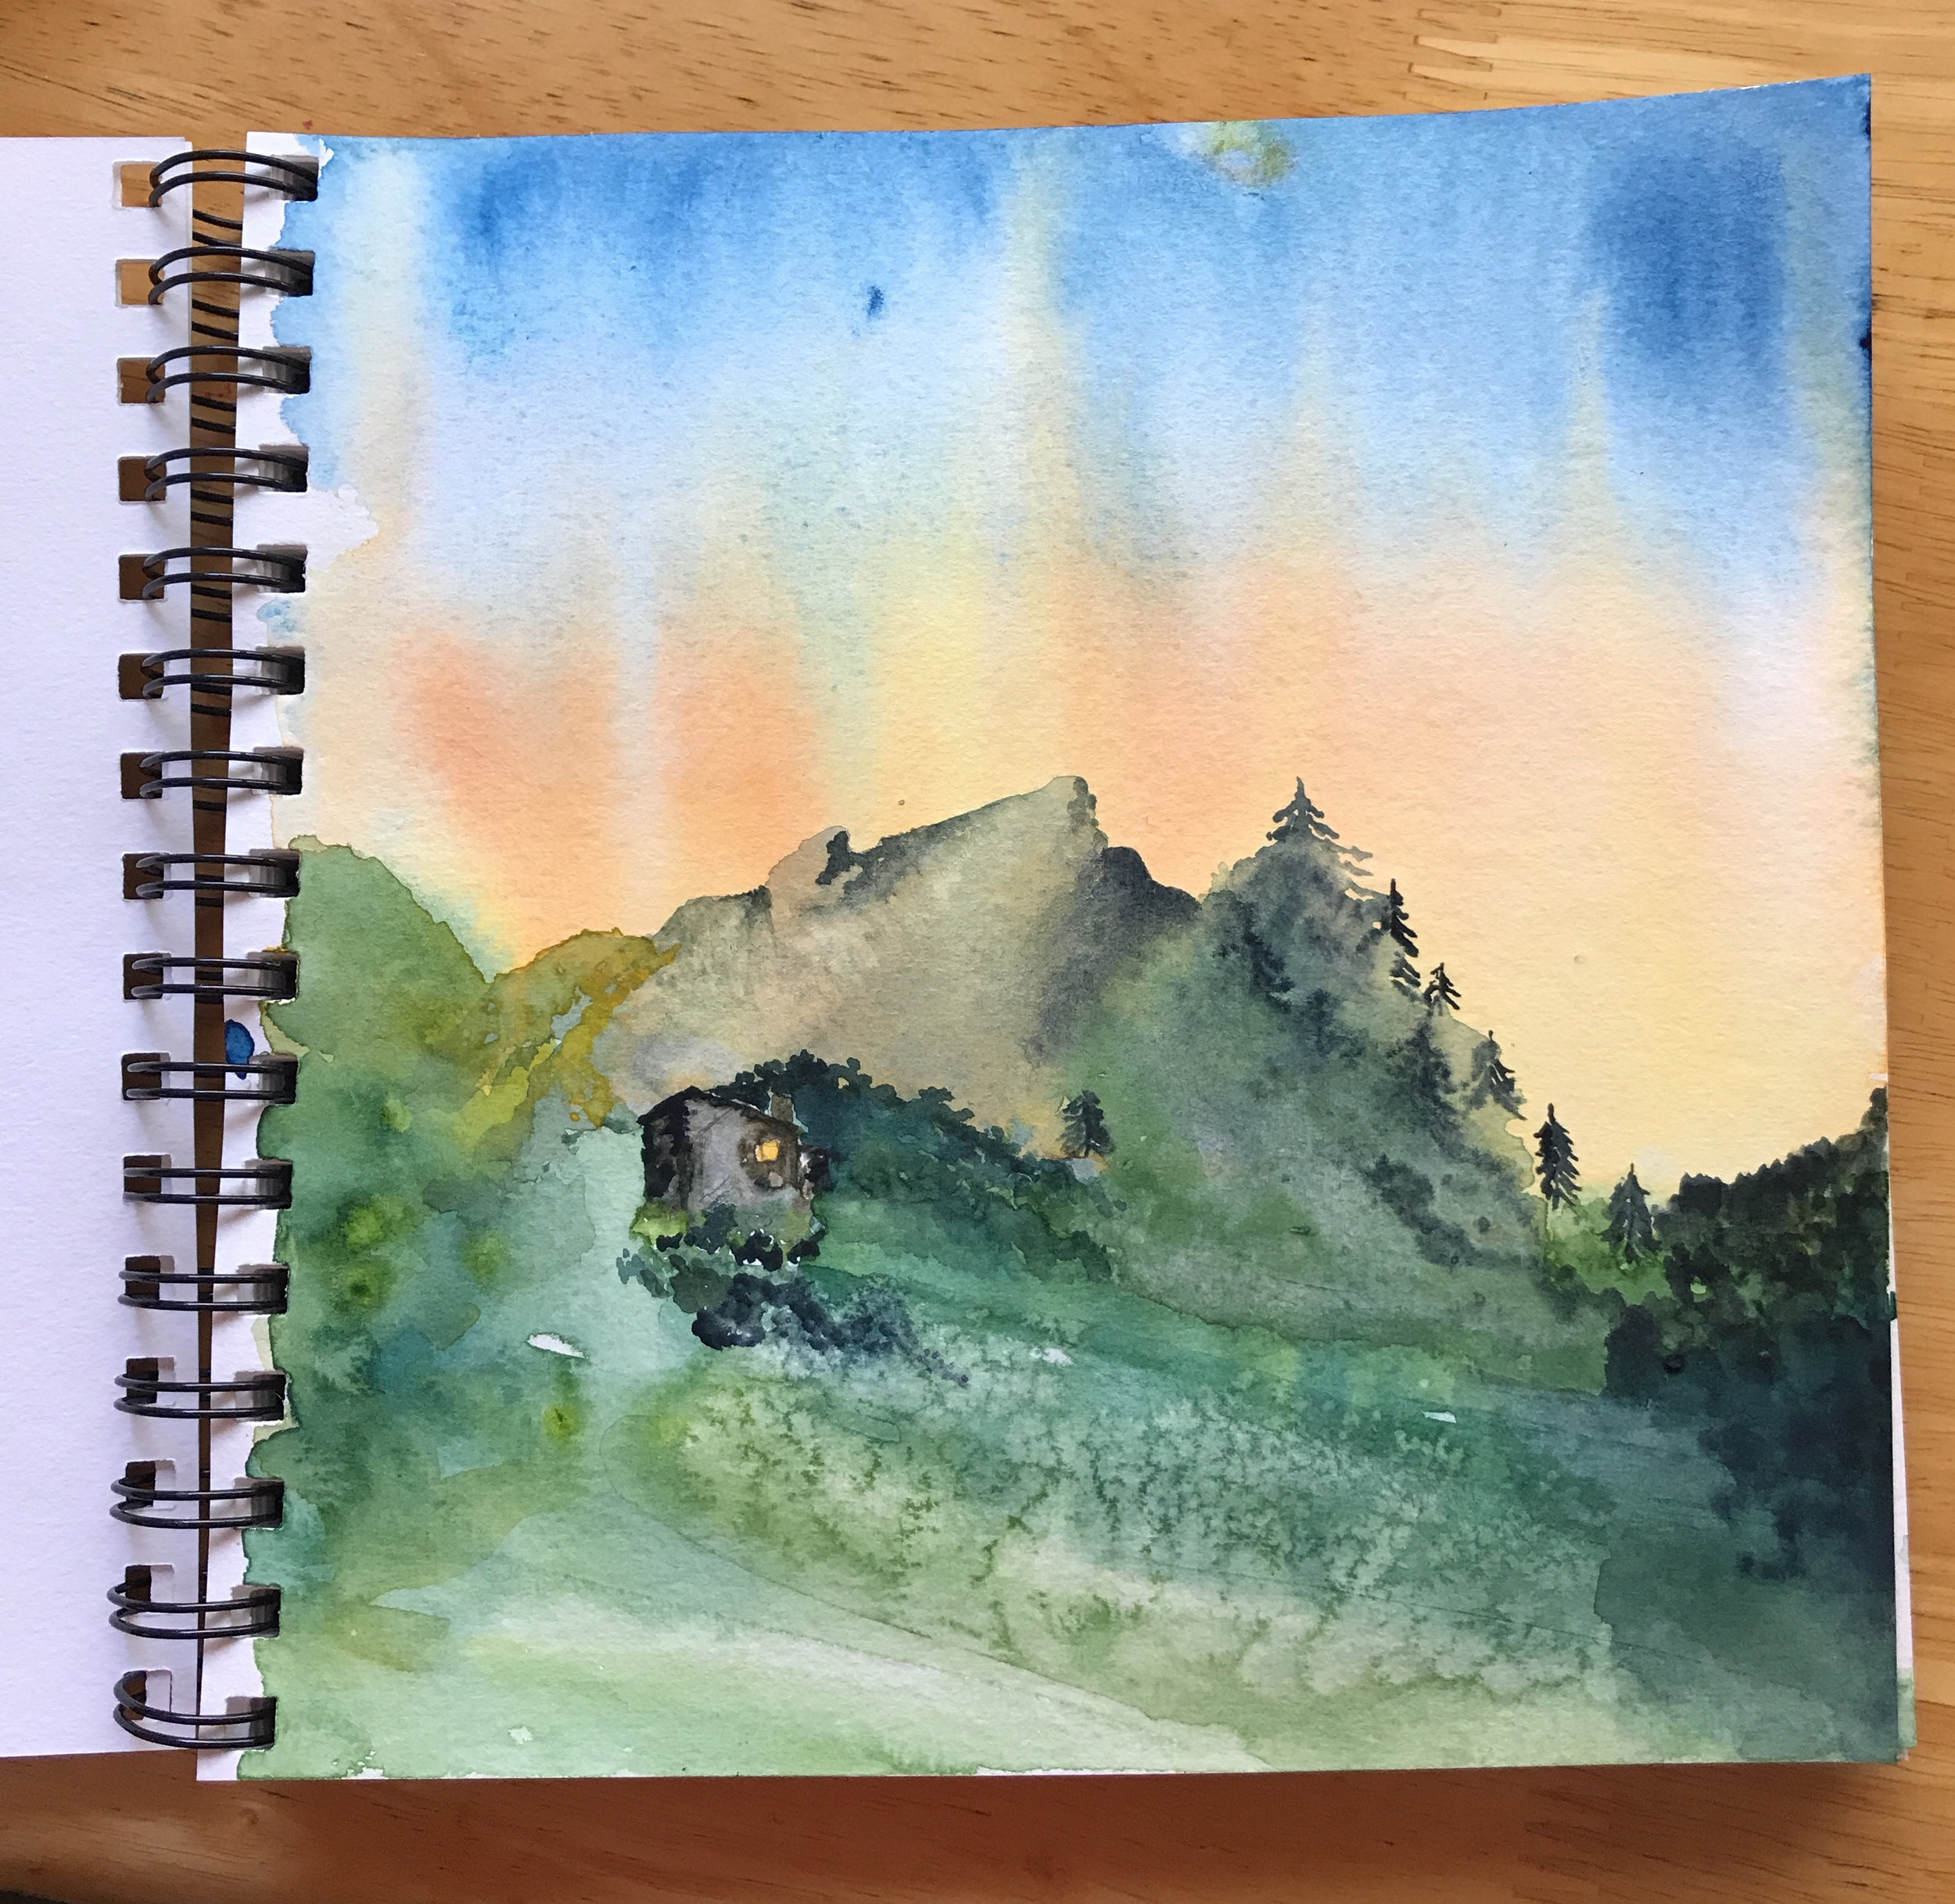 This is the mountain cabin where the Greeting Card People have their annual writing retreat. Yes, I painted it myself. No, I've never been there.